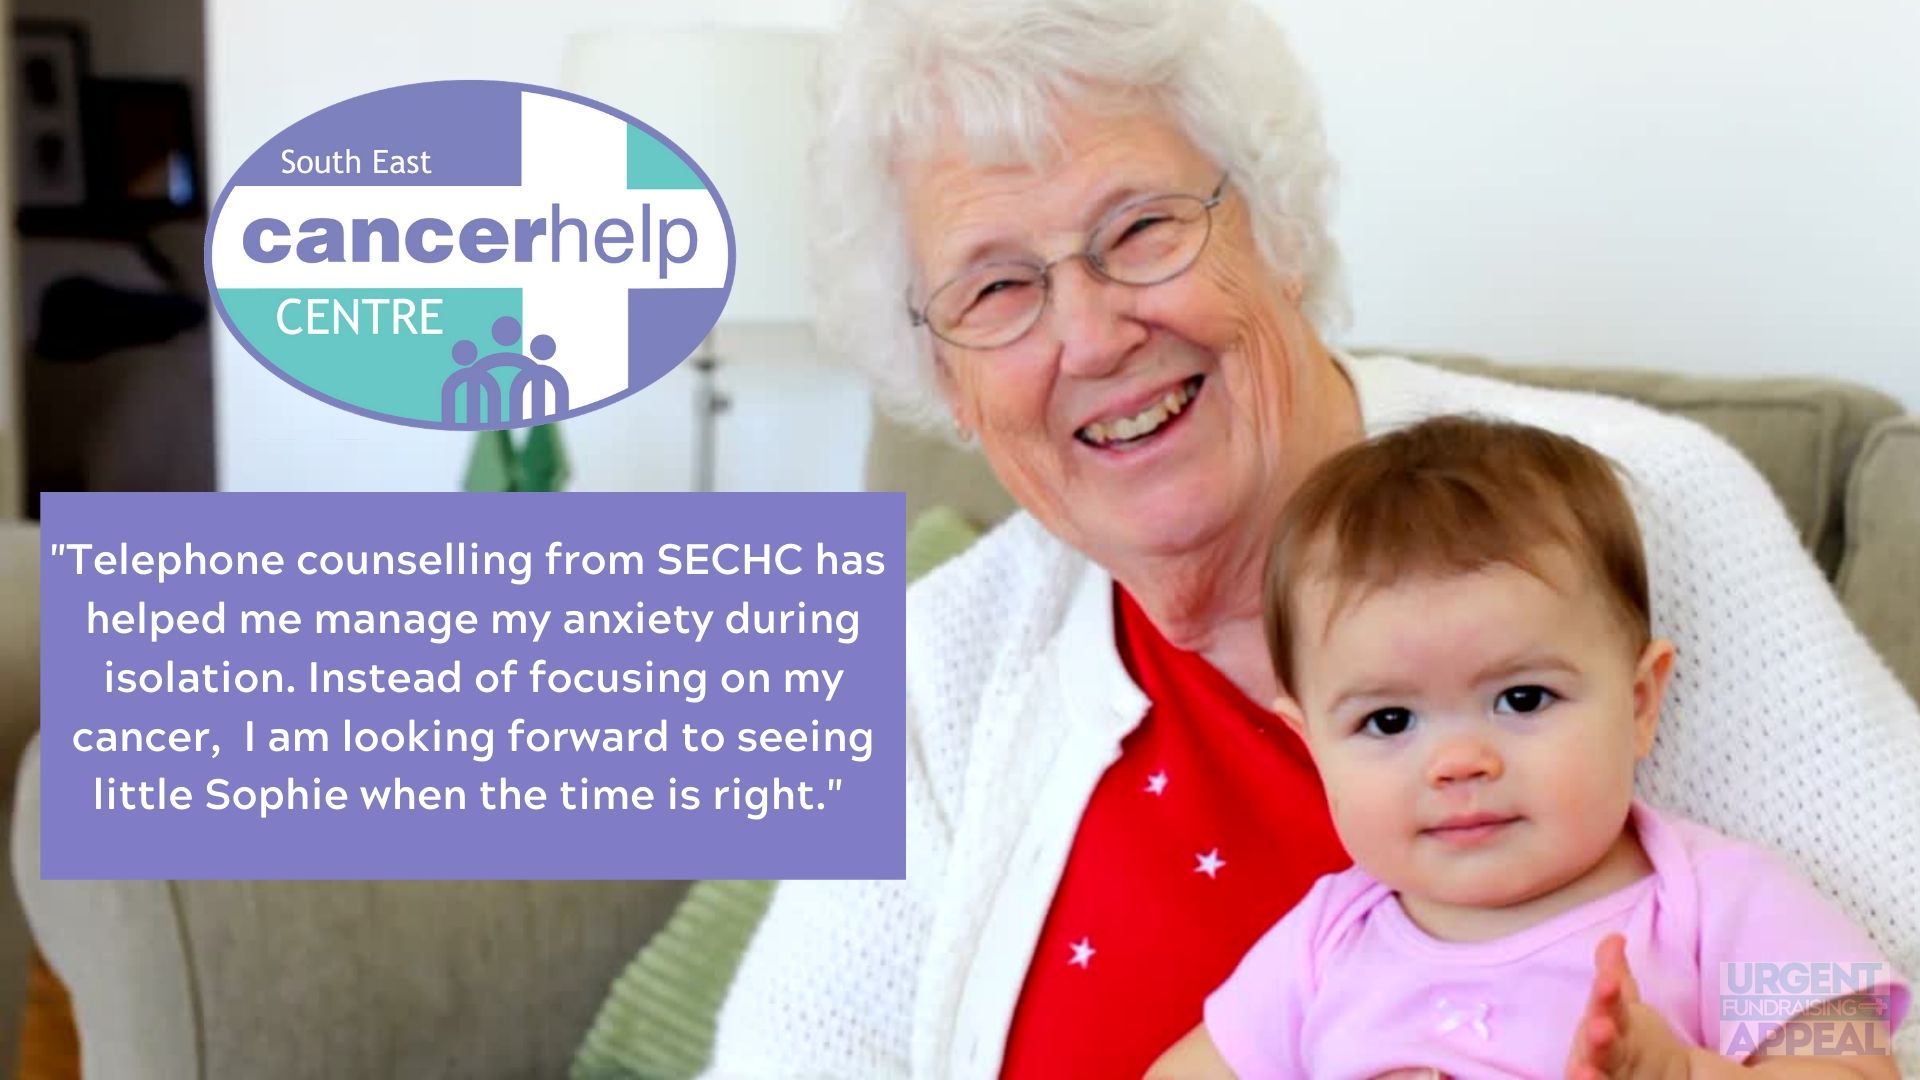 Telephone counselling from SECHC during isolation has helped Jean manage her anxiety and she is looking forward to happier times with her grandaughter Sophie againjpg